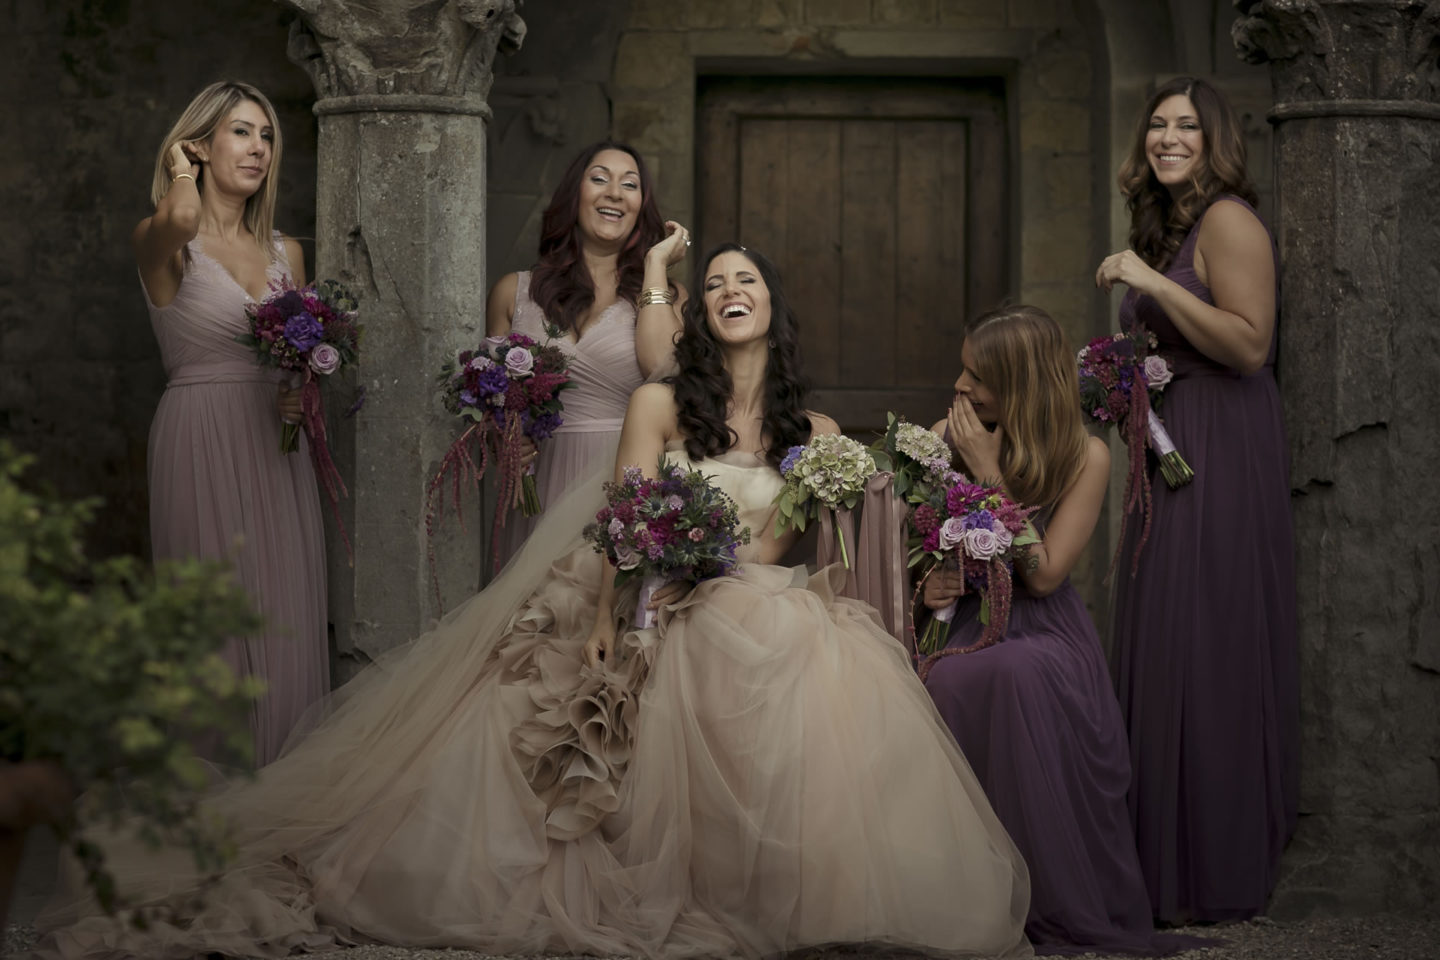 Purple :: Groups Bridal Parties :: David Bastianoni wedding photographer